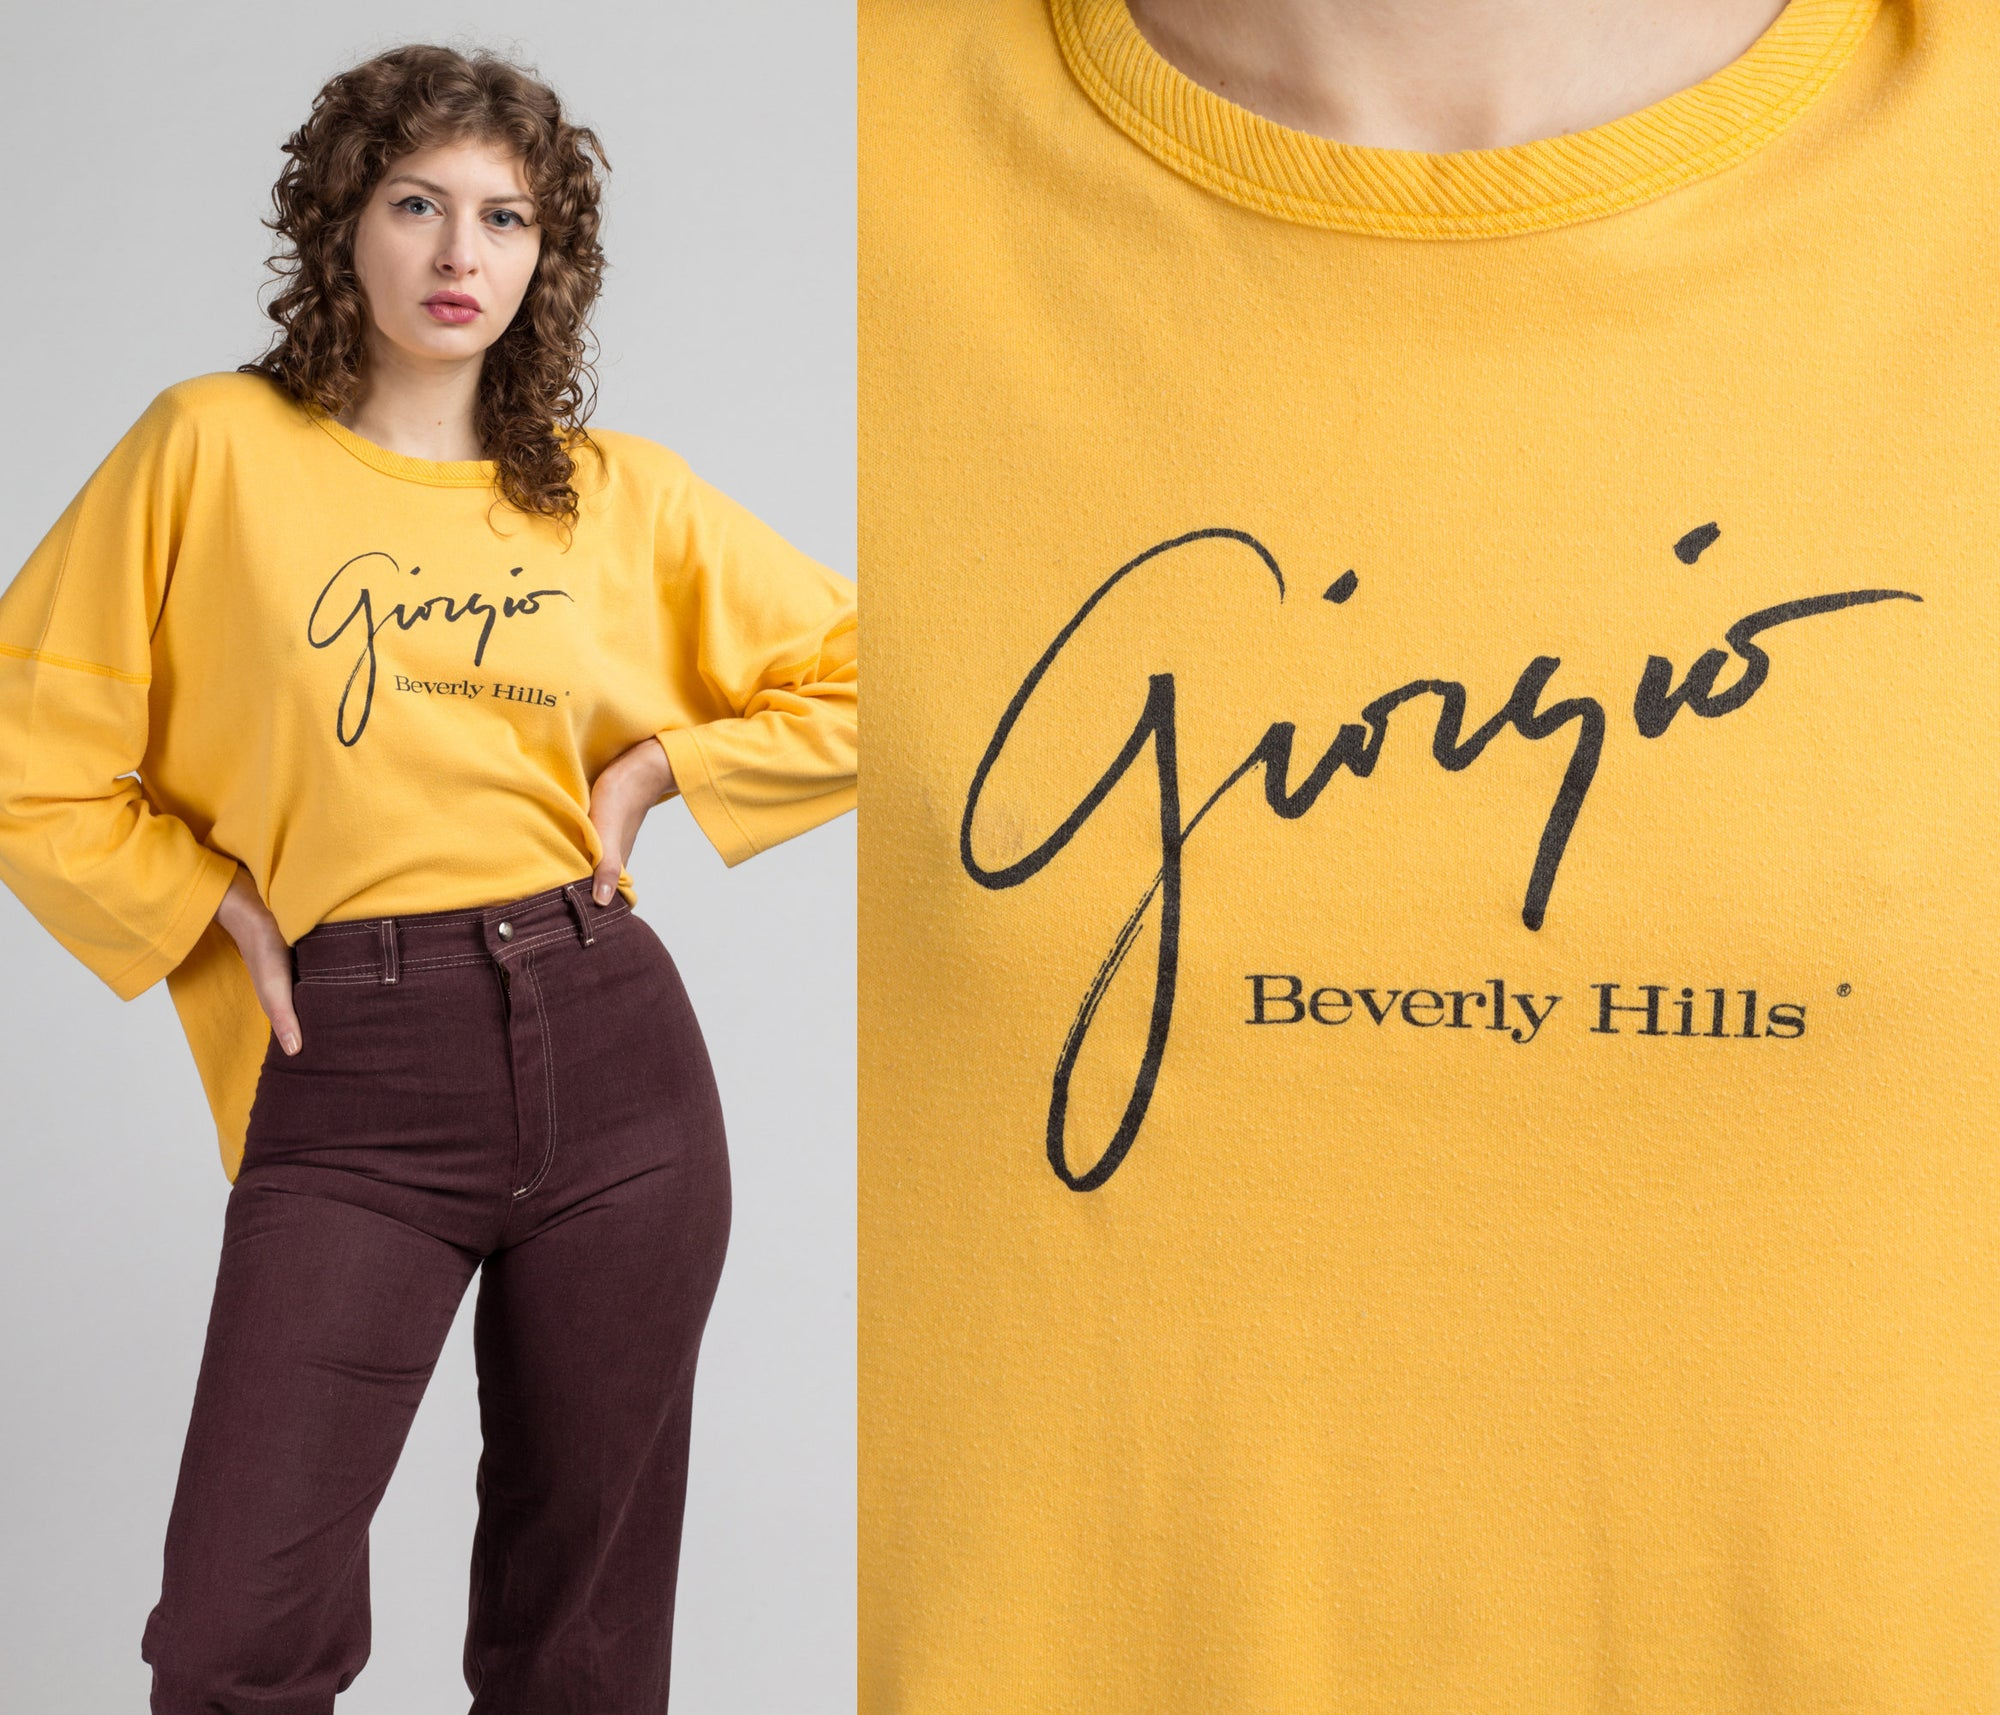 80s Giorgio Beverly Hills Yellow Sweatershirt - One Size | Vintage Long Sleeve Oversize Graphic Top